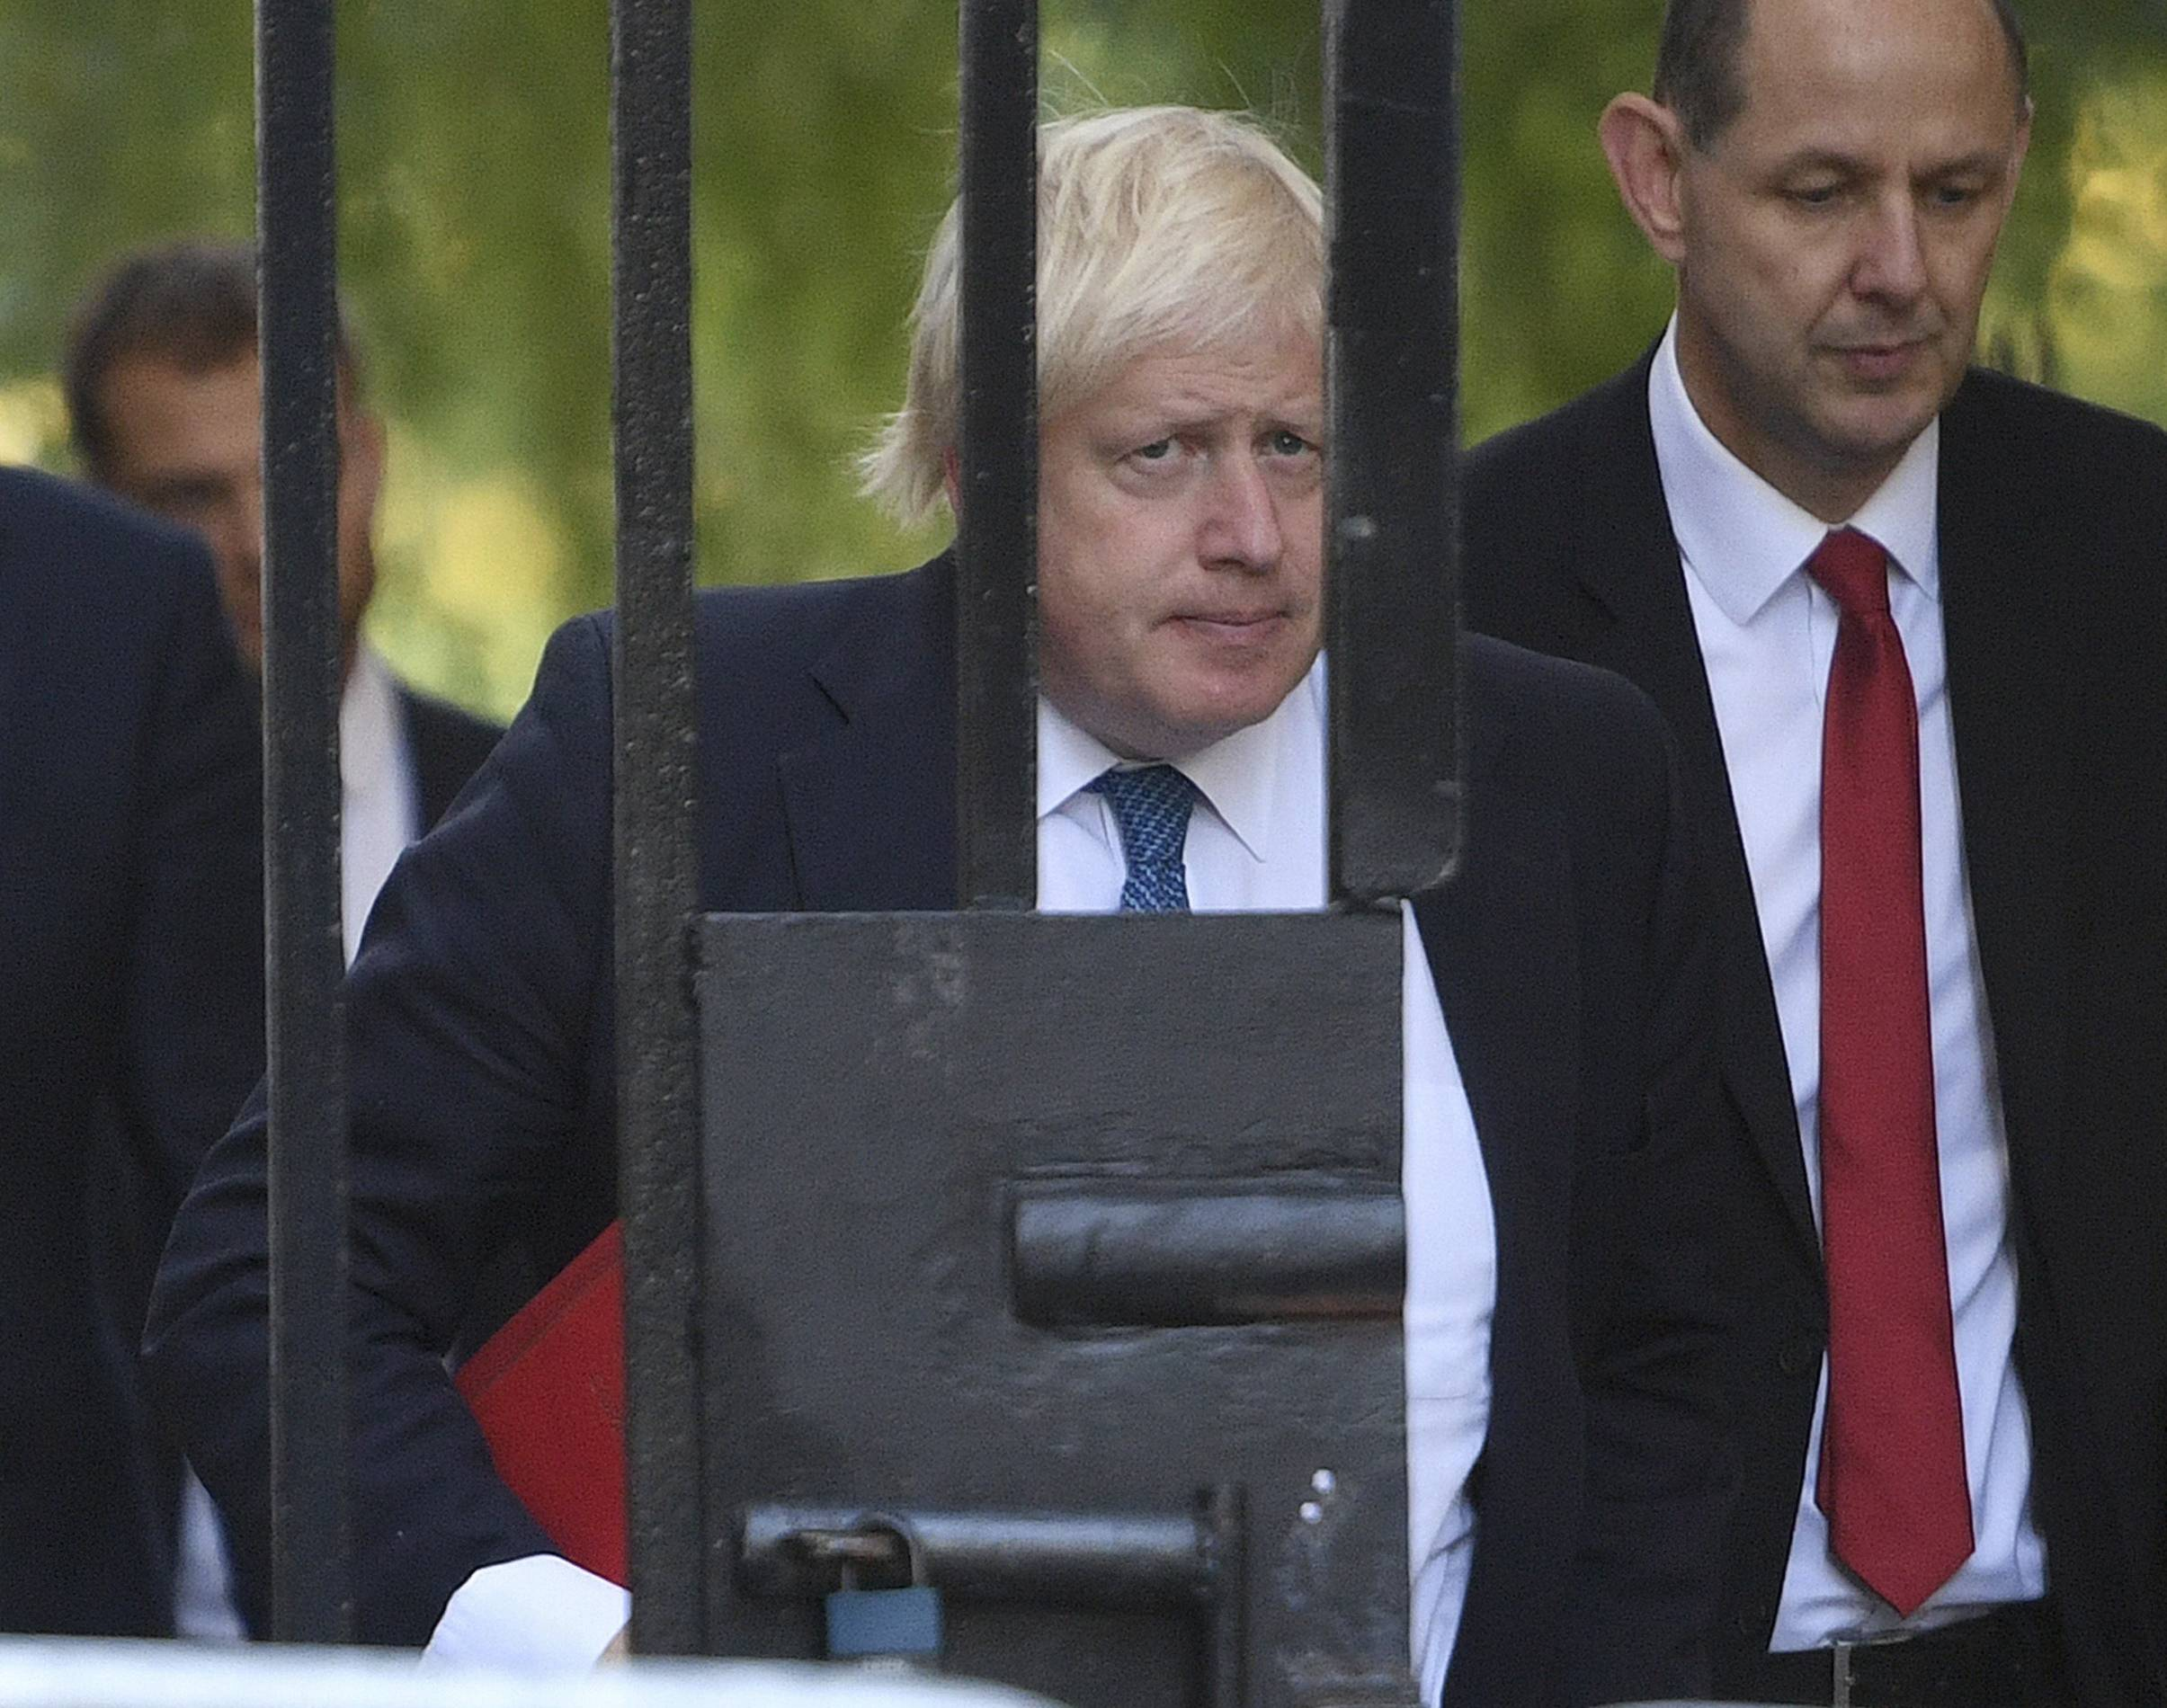 Britain's Foreign Secretary Boris Johnson arrives at Downing Street in London, following a terrorist attack at Parsons Green subway station in London, Friday, Sept. 15, 2017.  A bucket wrapped in an insulated bag caught fire on a packed London subway train early Friday, sending commuters running for safety at the height of the morning rush hour. (Victoria Jones/PA via AP)